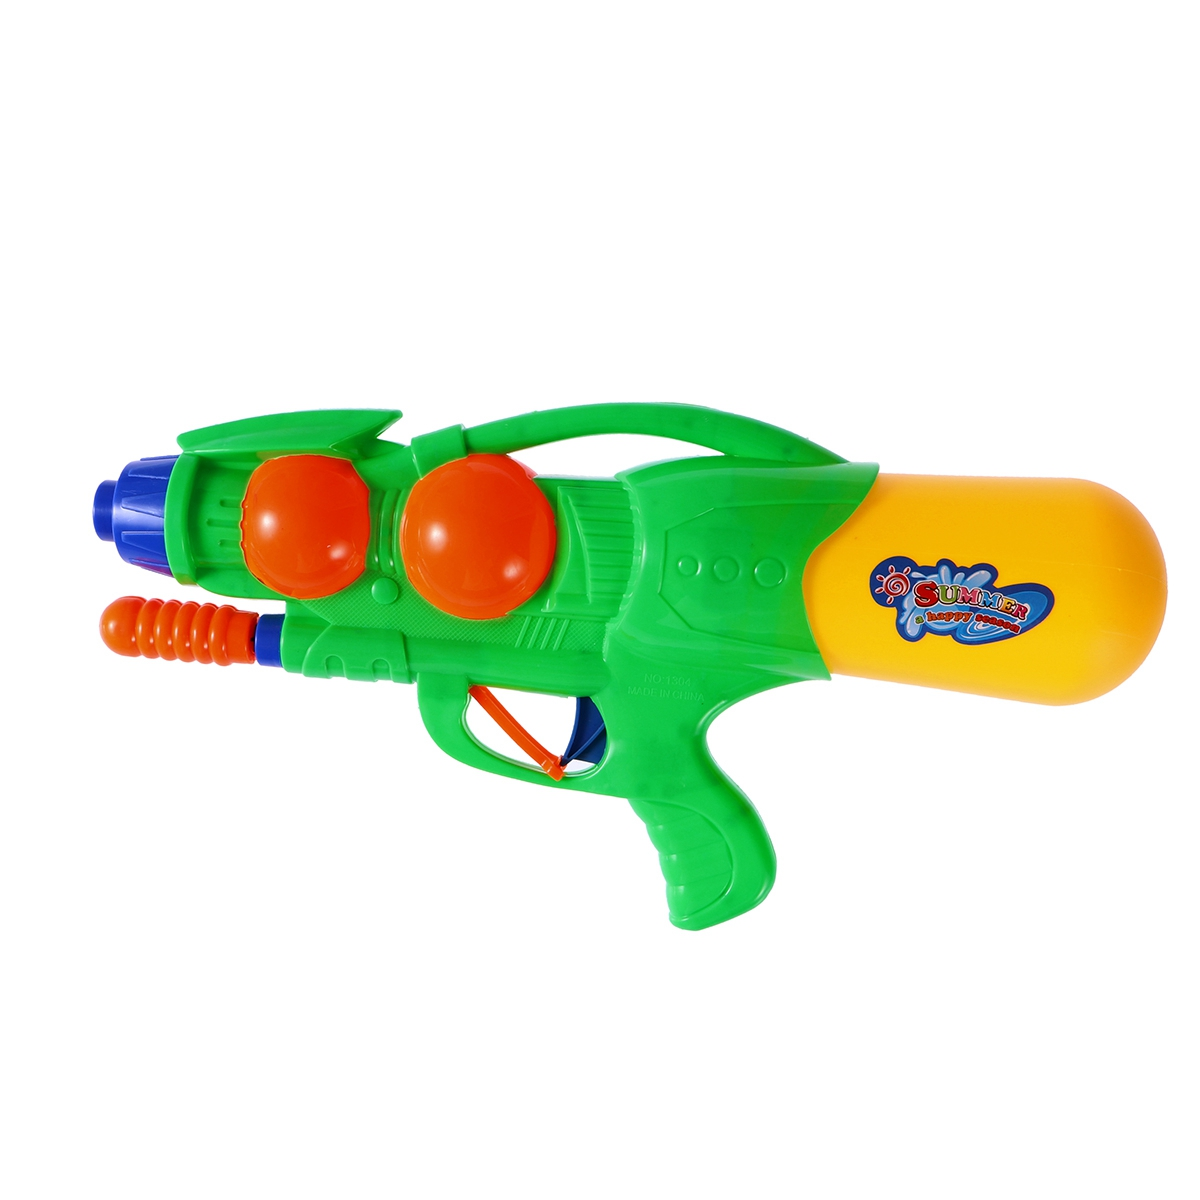 Children Water Blaster Water <font><b>Shooter</b></font> Toy Summer Swimming Pool Game Beach Sand Water Shooting Toy (Green) image